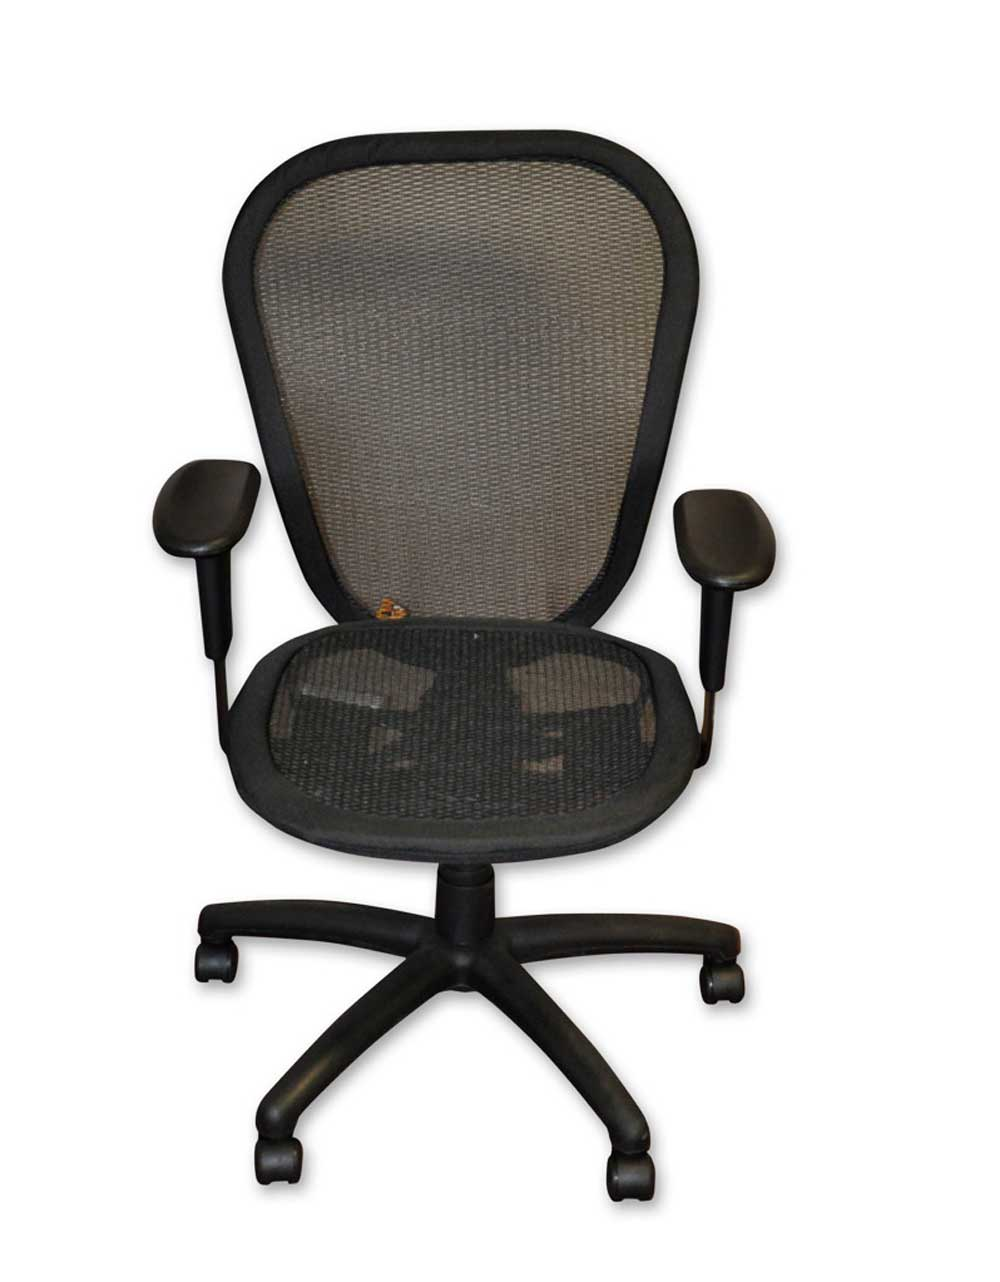 Ergonomic Mesh Office Chair Ergonomic Mesh Chairs For Home Office